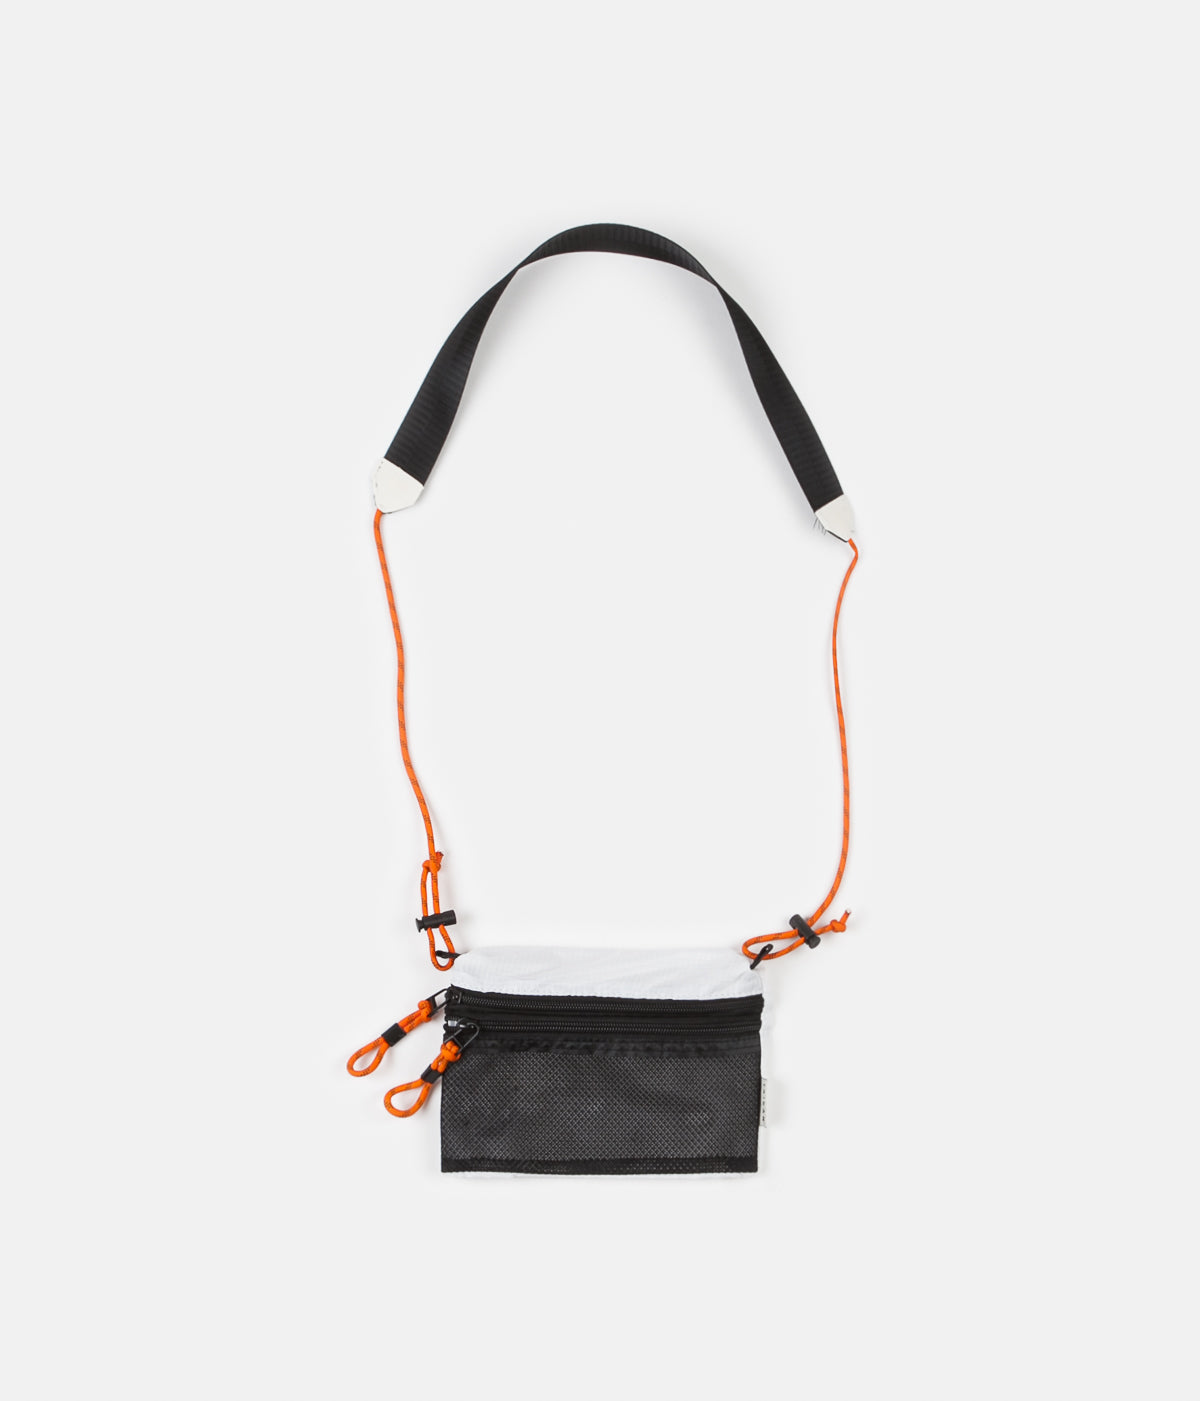 Taikan Everything Sacoche Bag - White / Black / Orange - Small